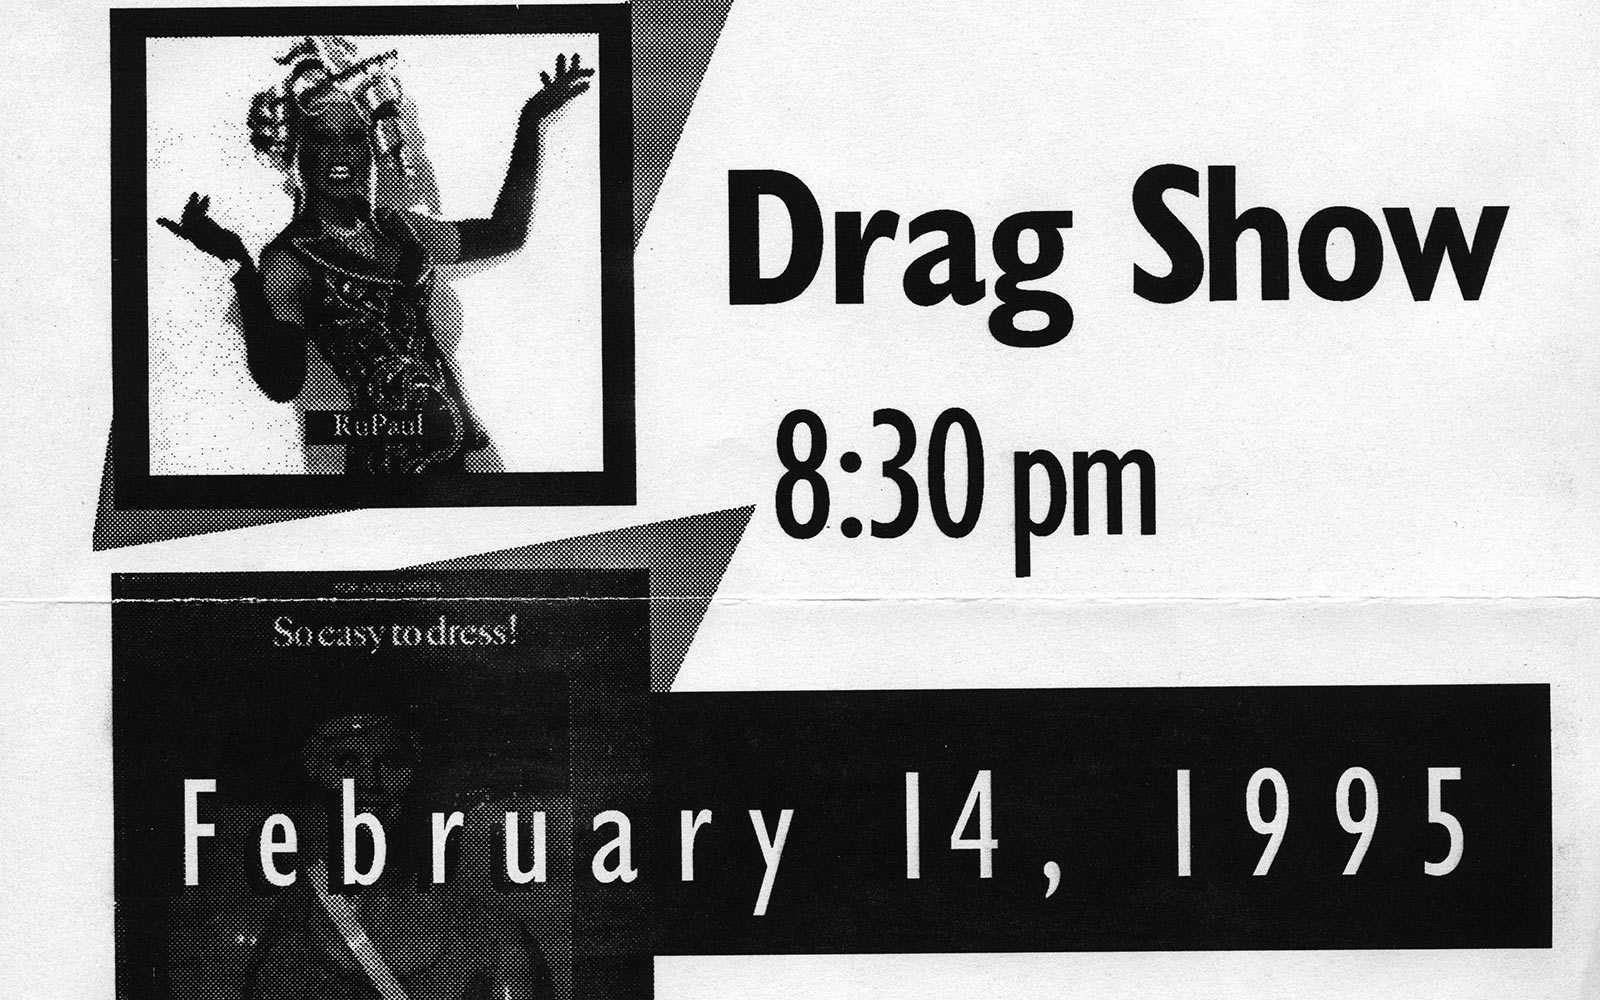 1995 - Students and faculty begin to offer new programming to support the LGBT community. Some of it was to raise awareness of the issues, and some of it, like the annual drag show, was just plain fun.